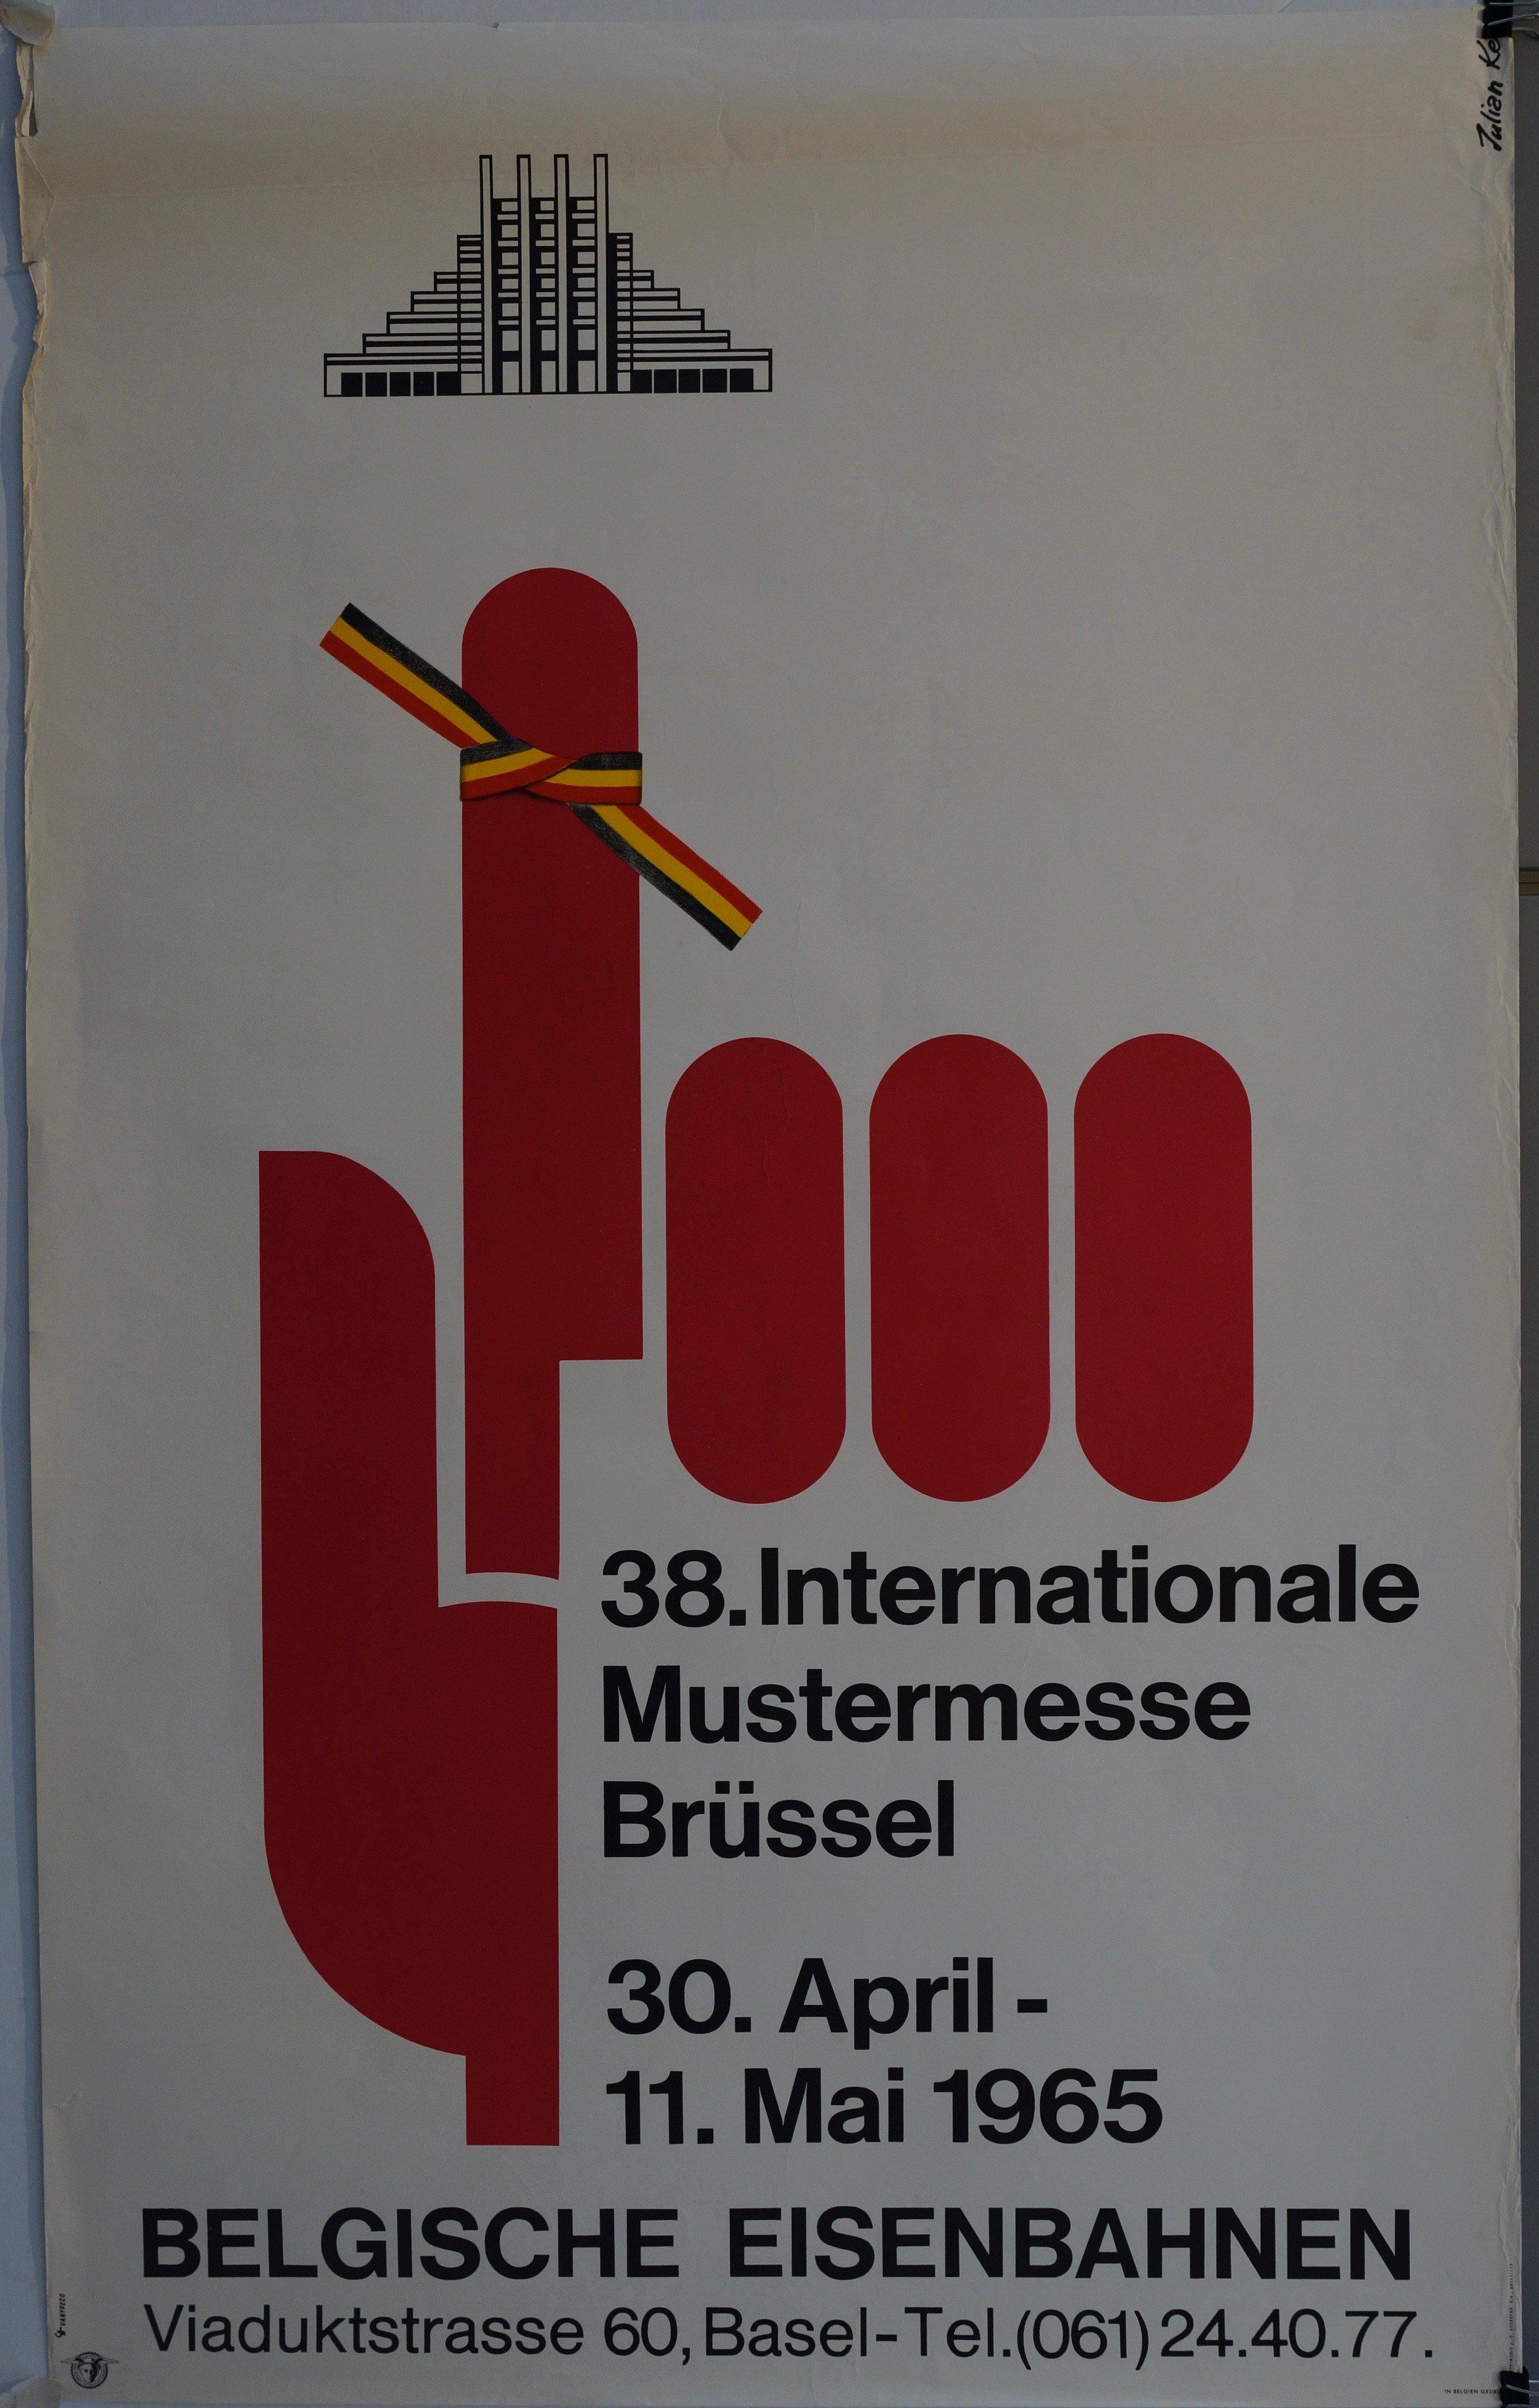 38. Internationale Mustermesse Brüssel